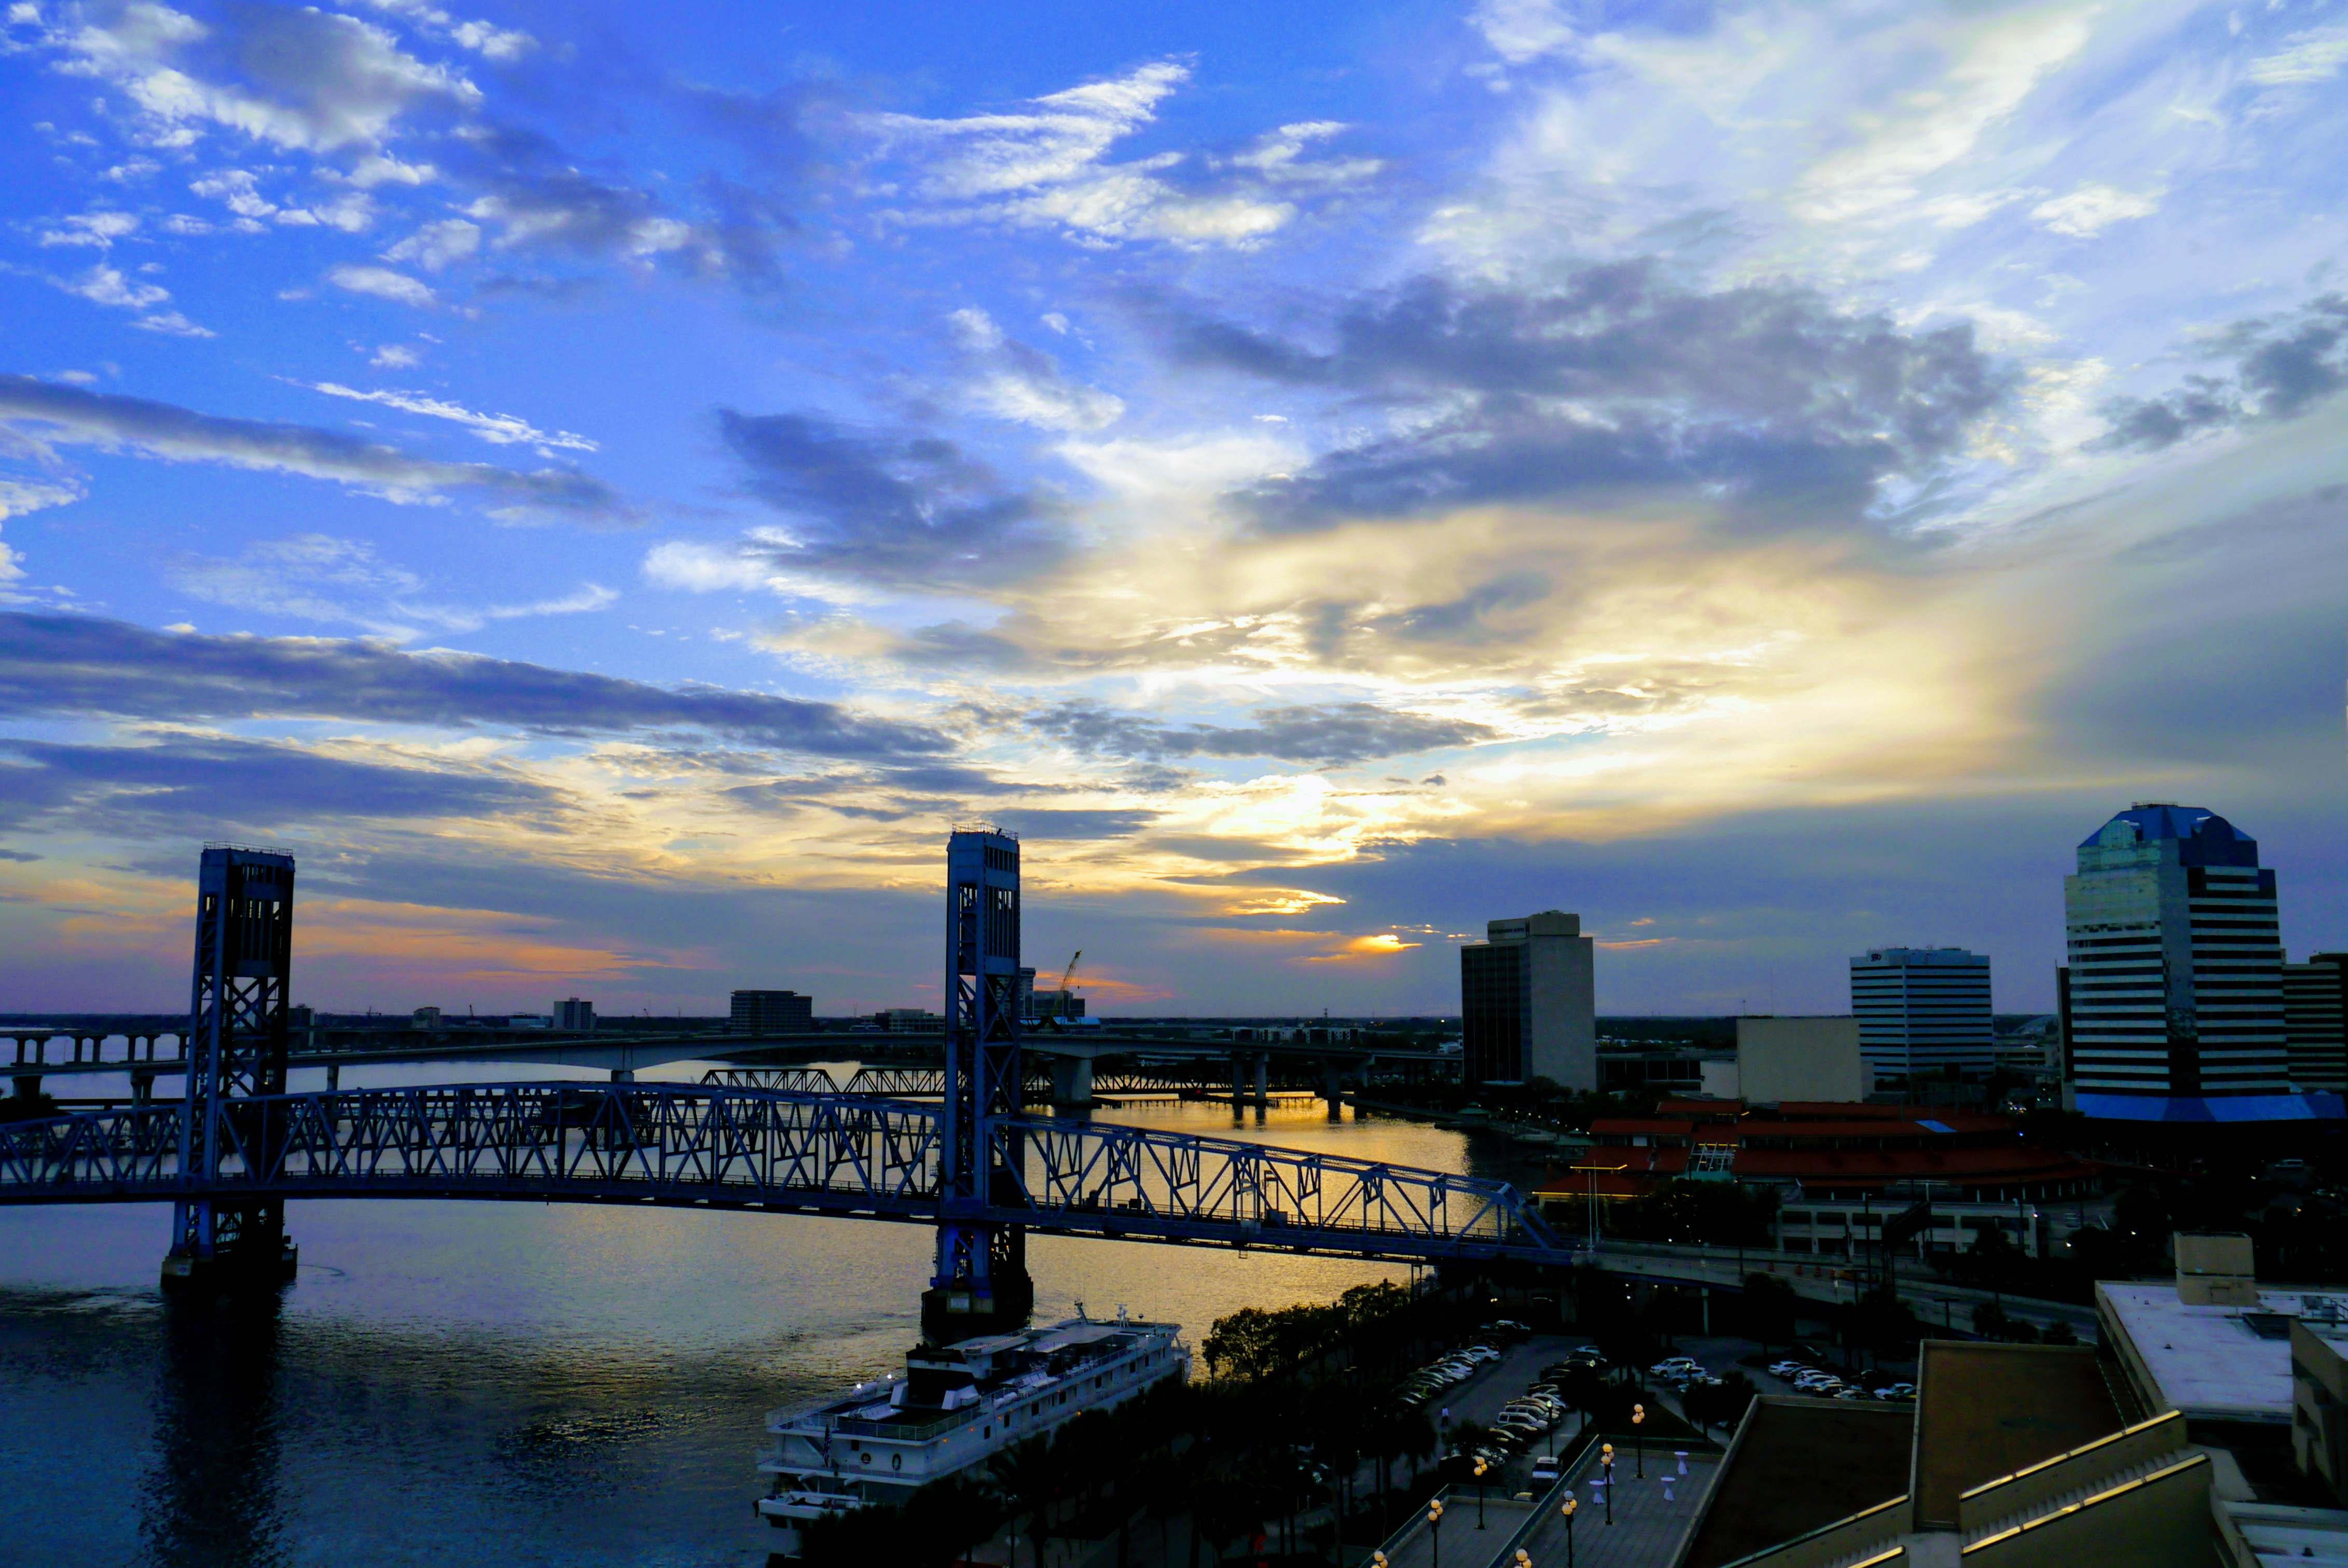 dusk view of the bridge over the river in Jacksonville